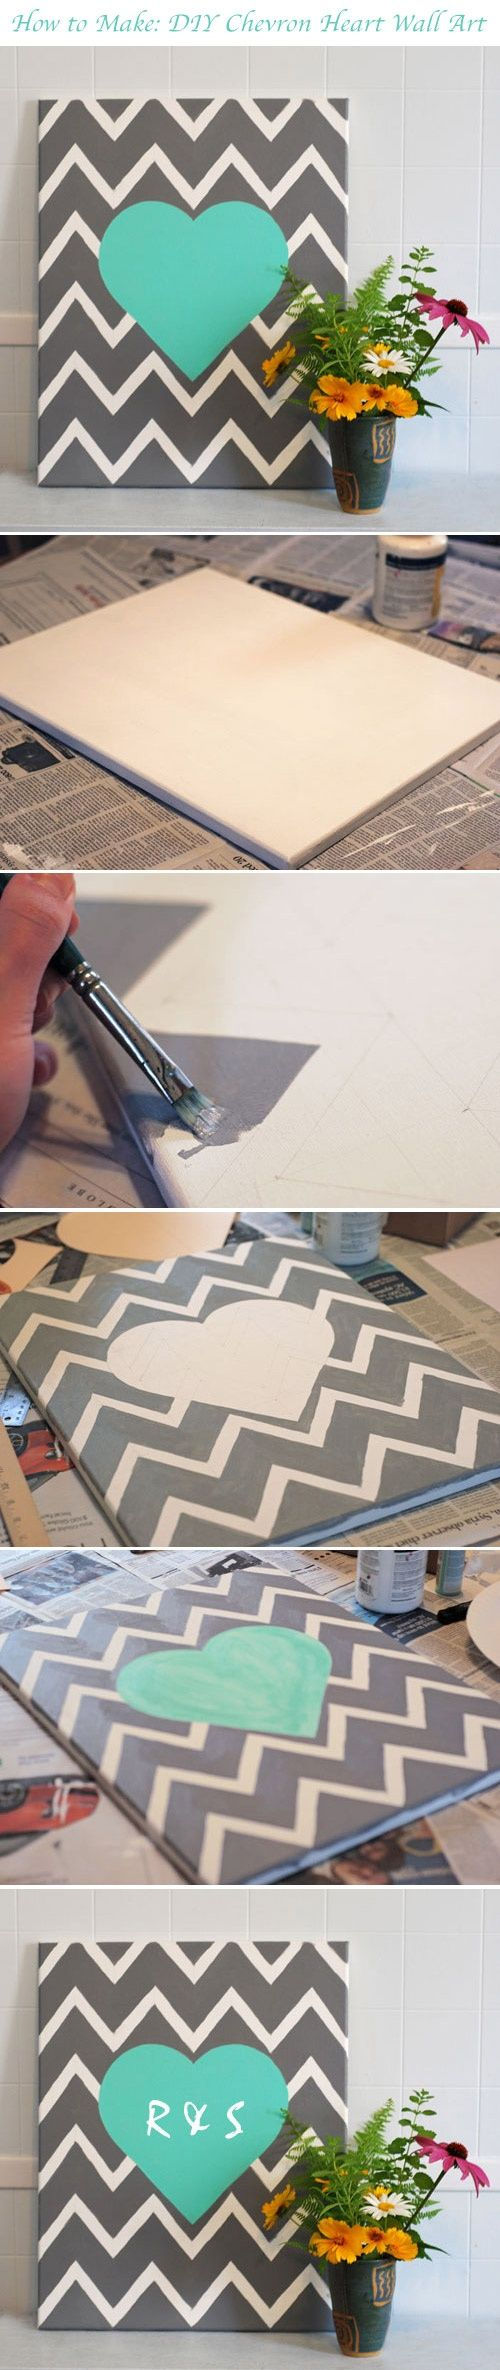 Get Your Hands Dirty With DIY Painting Ideas -homesthetics.net (74)